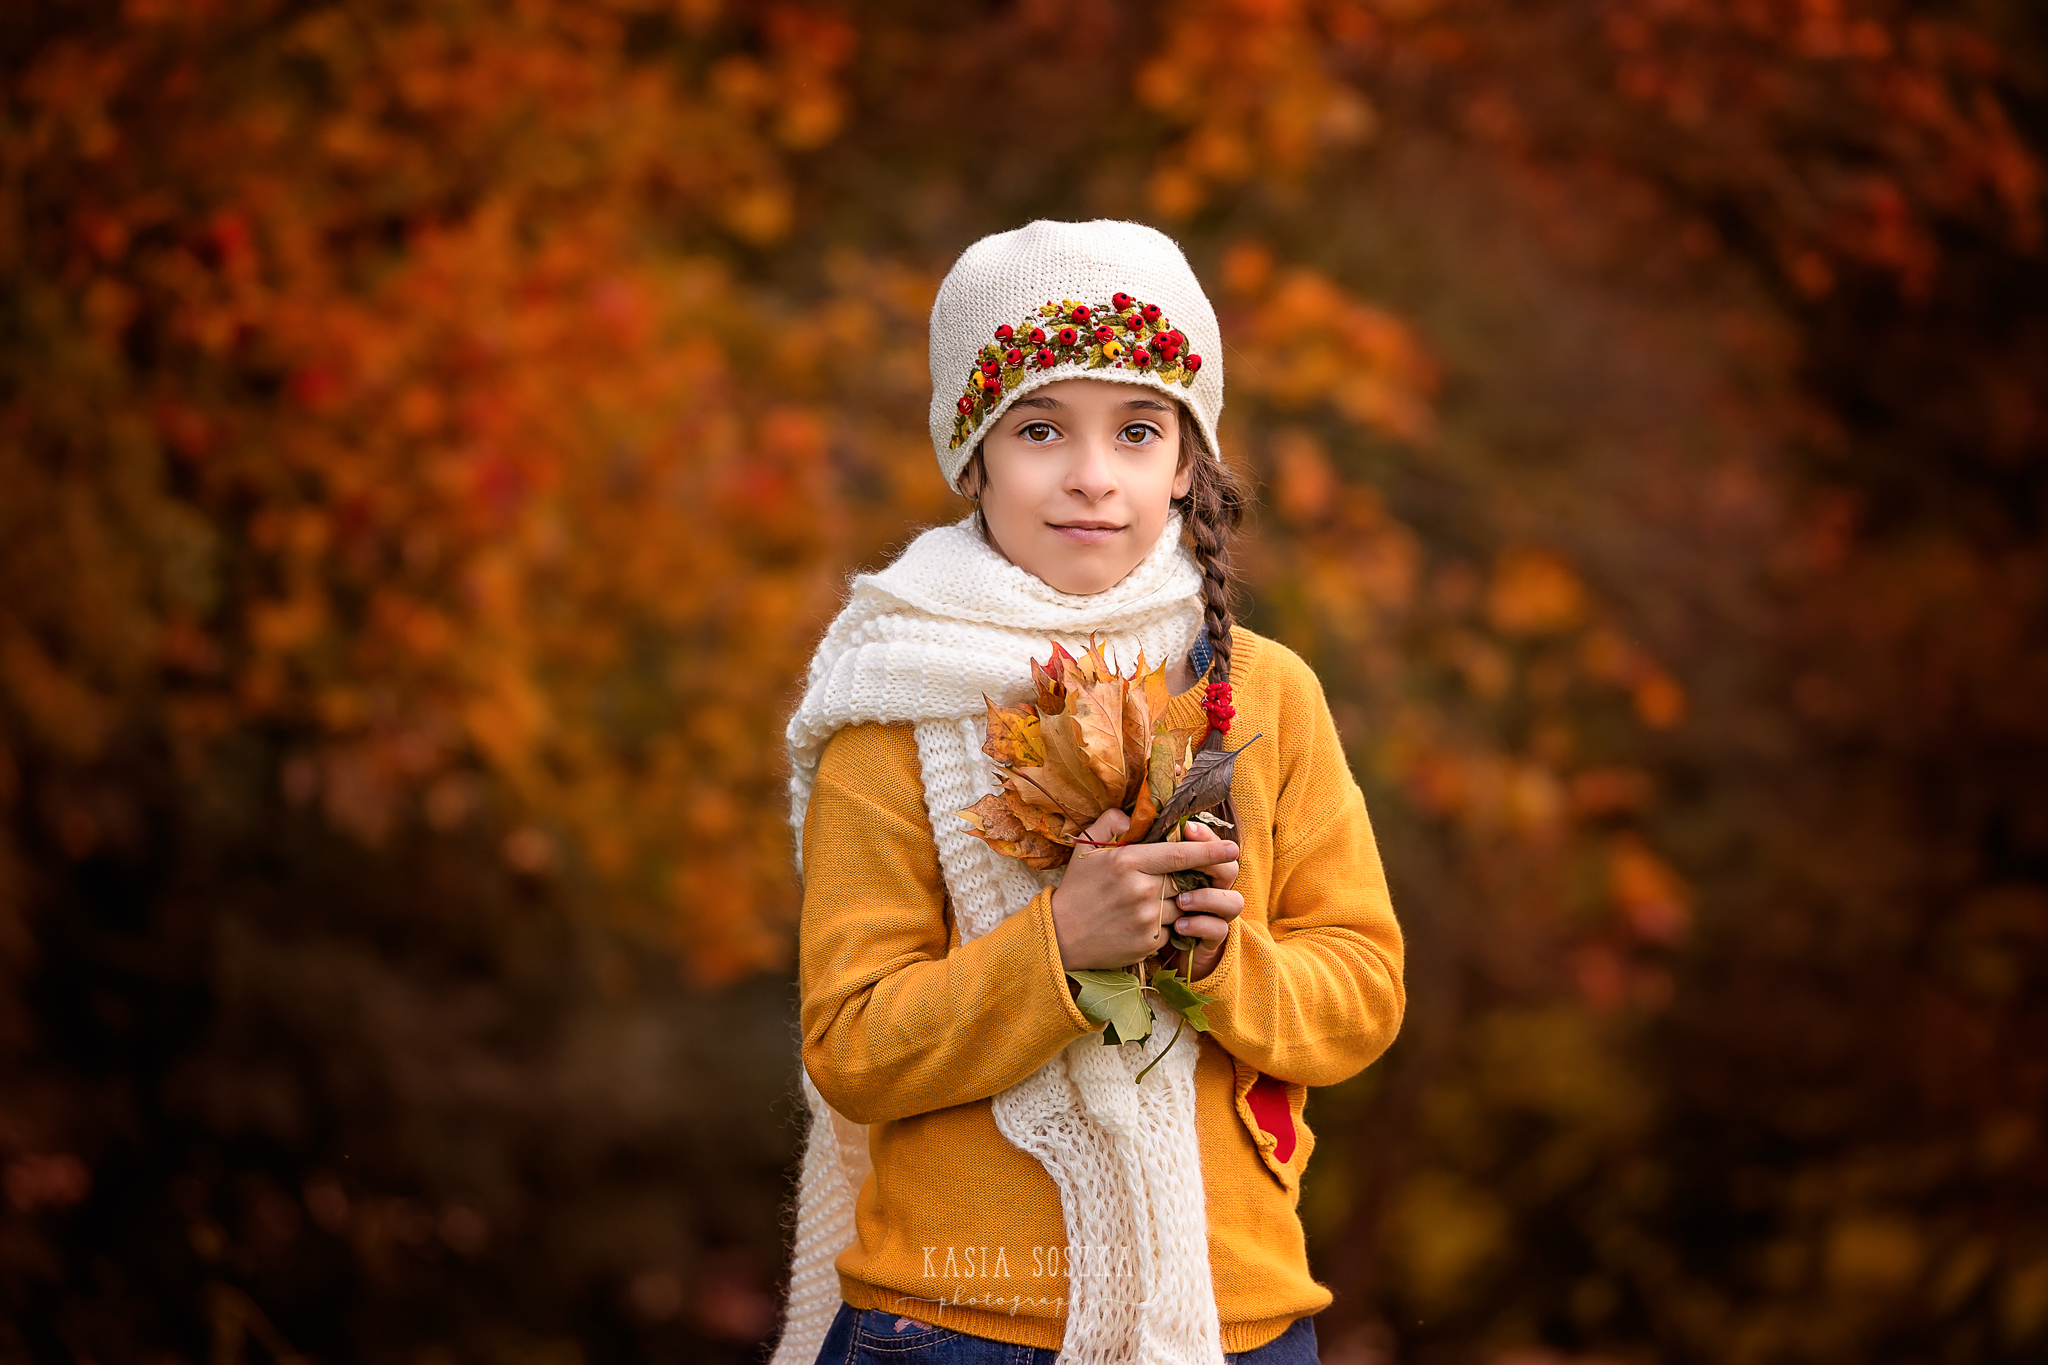 Children photography Leeds, York, Bradford, Harrogate: girl in a yellow sweater holding autumn leaves. Child autumn session in Leeds, Yorkshire